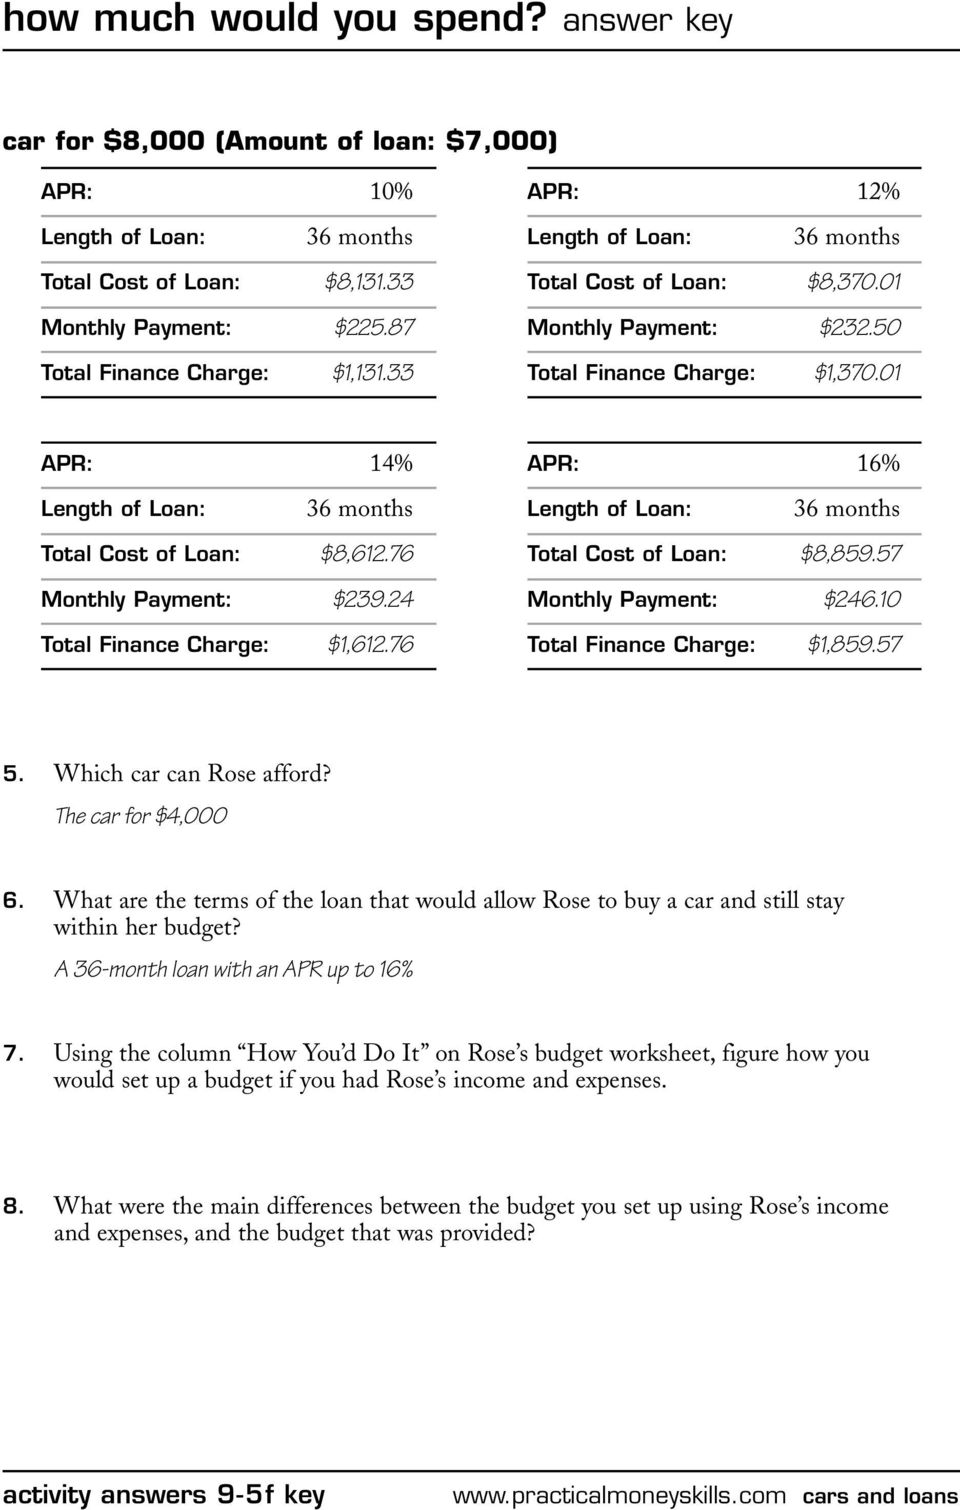 how much would you spend? answer key - PDF